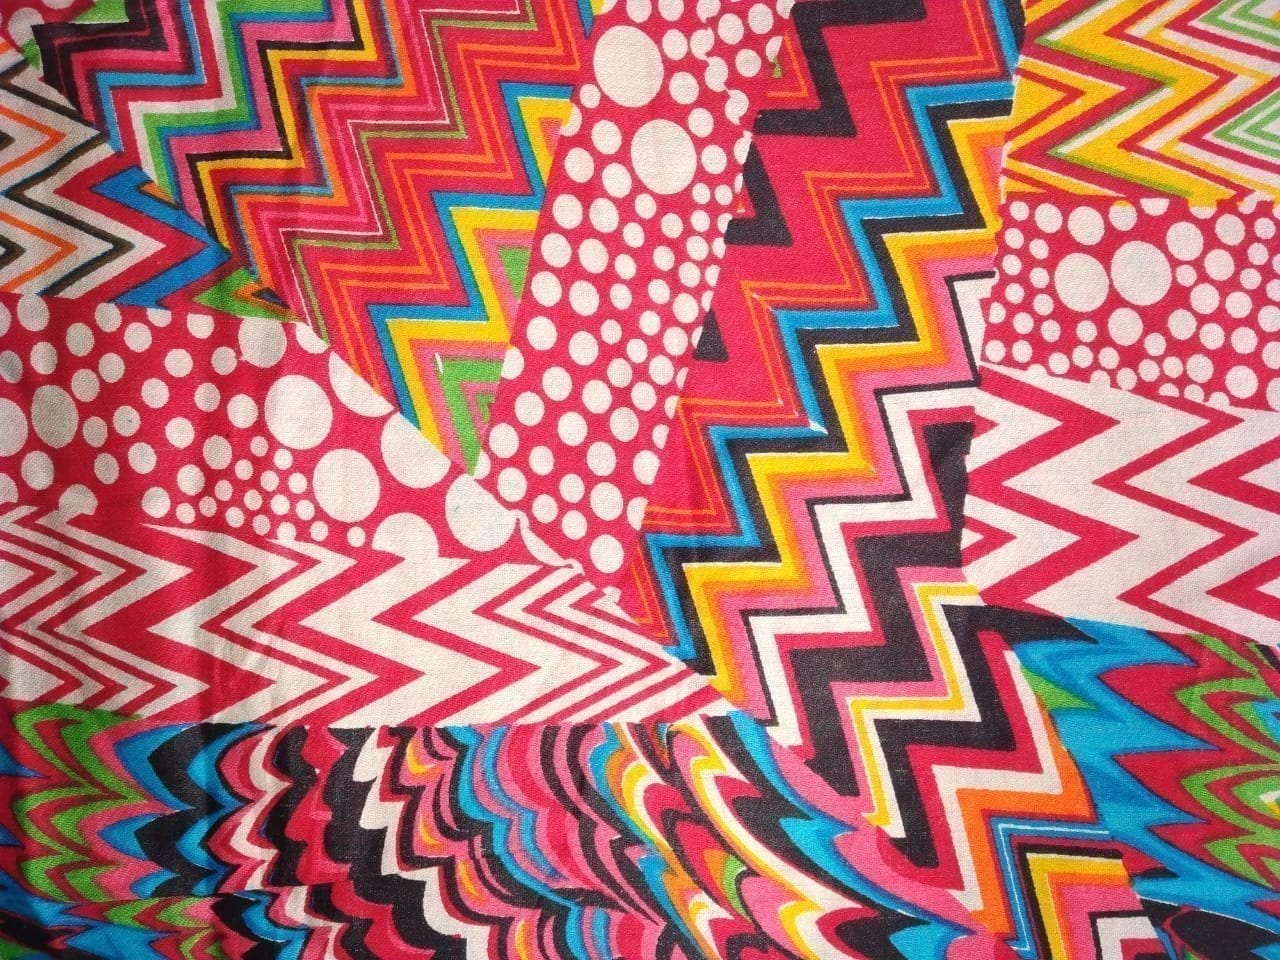 Red Printed Glazed Cotton Fabric for Multipurpose use GC009 1